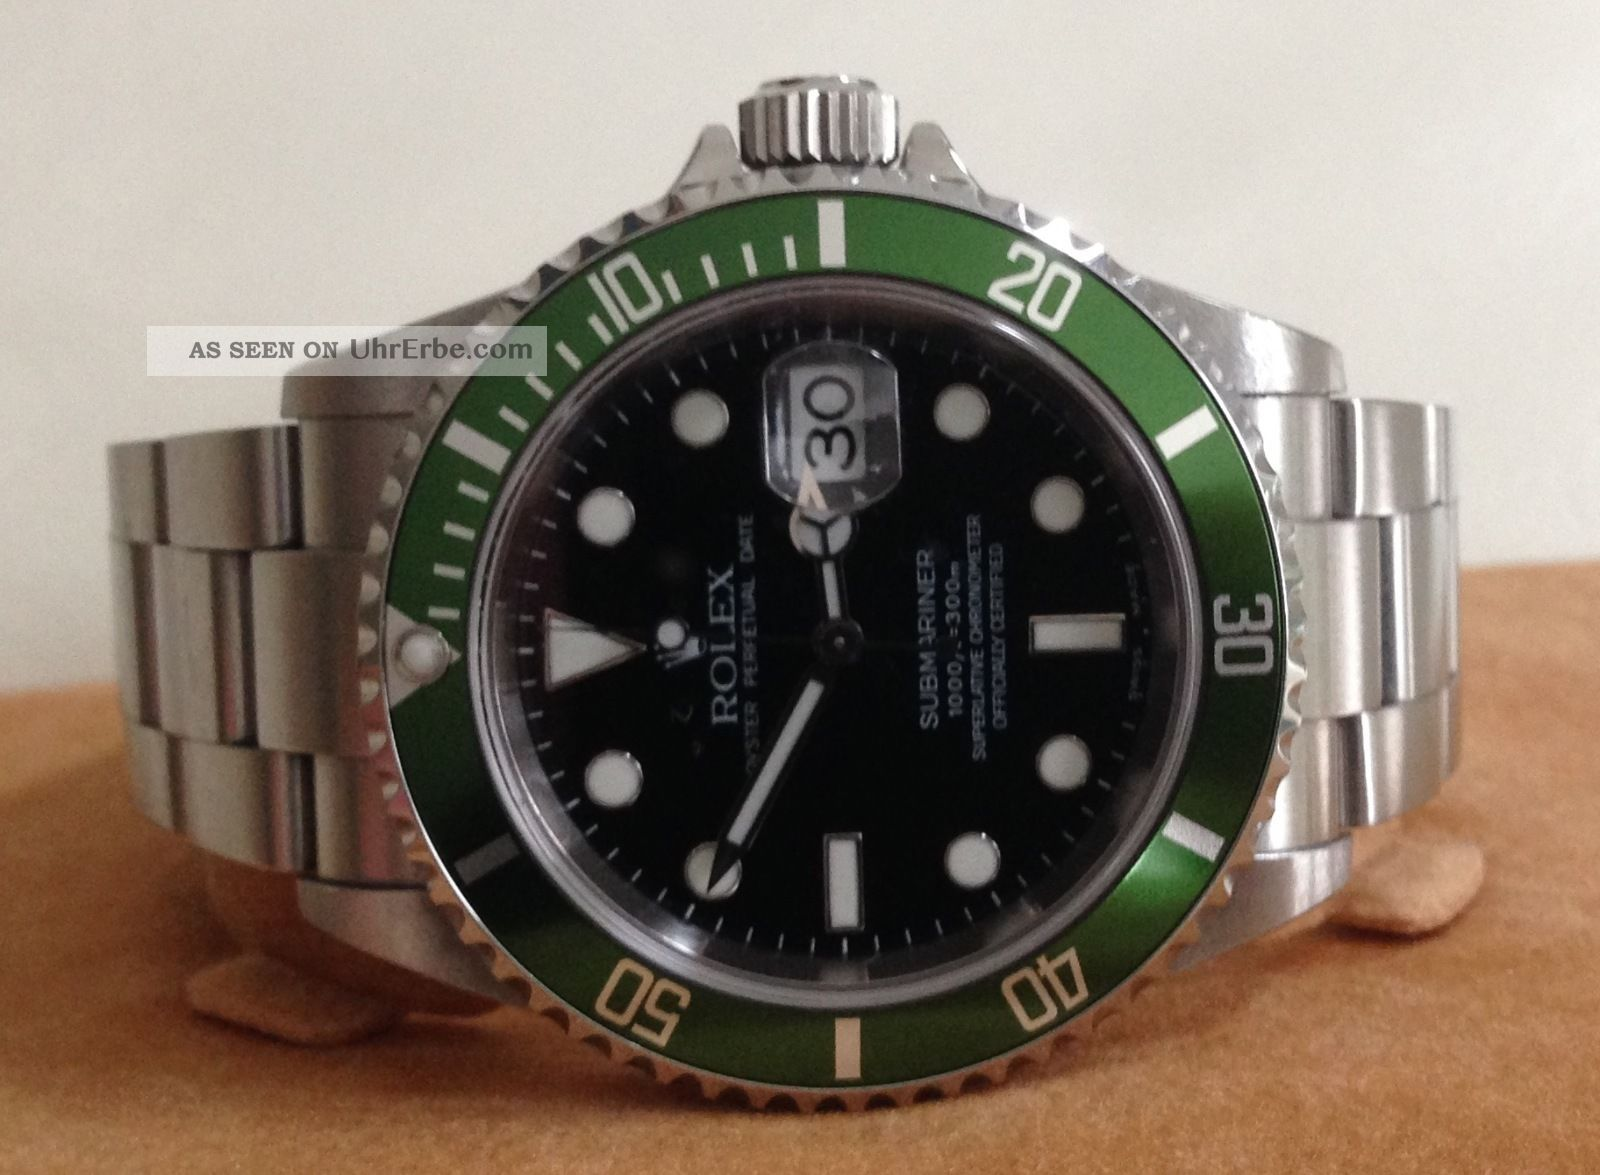 Rolex Submariner 16610 Lv